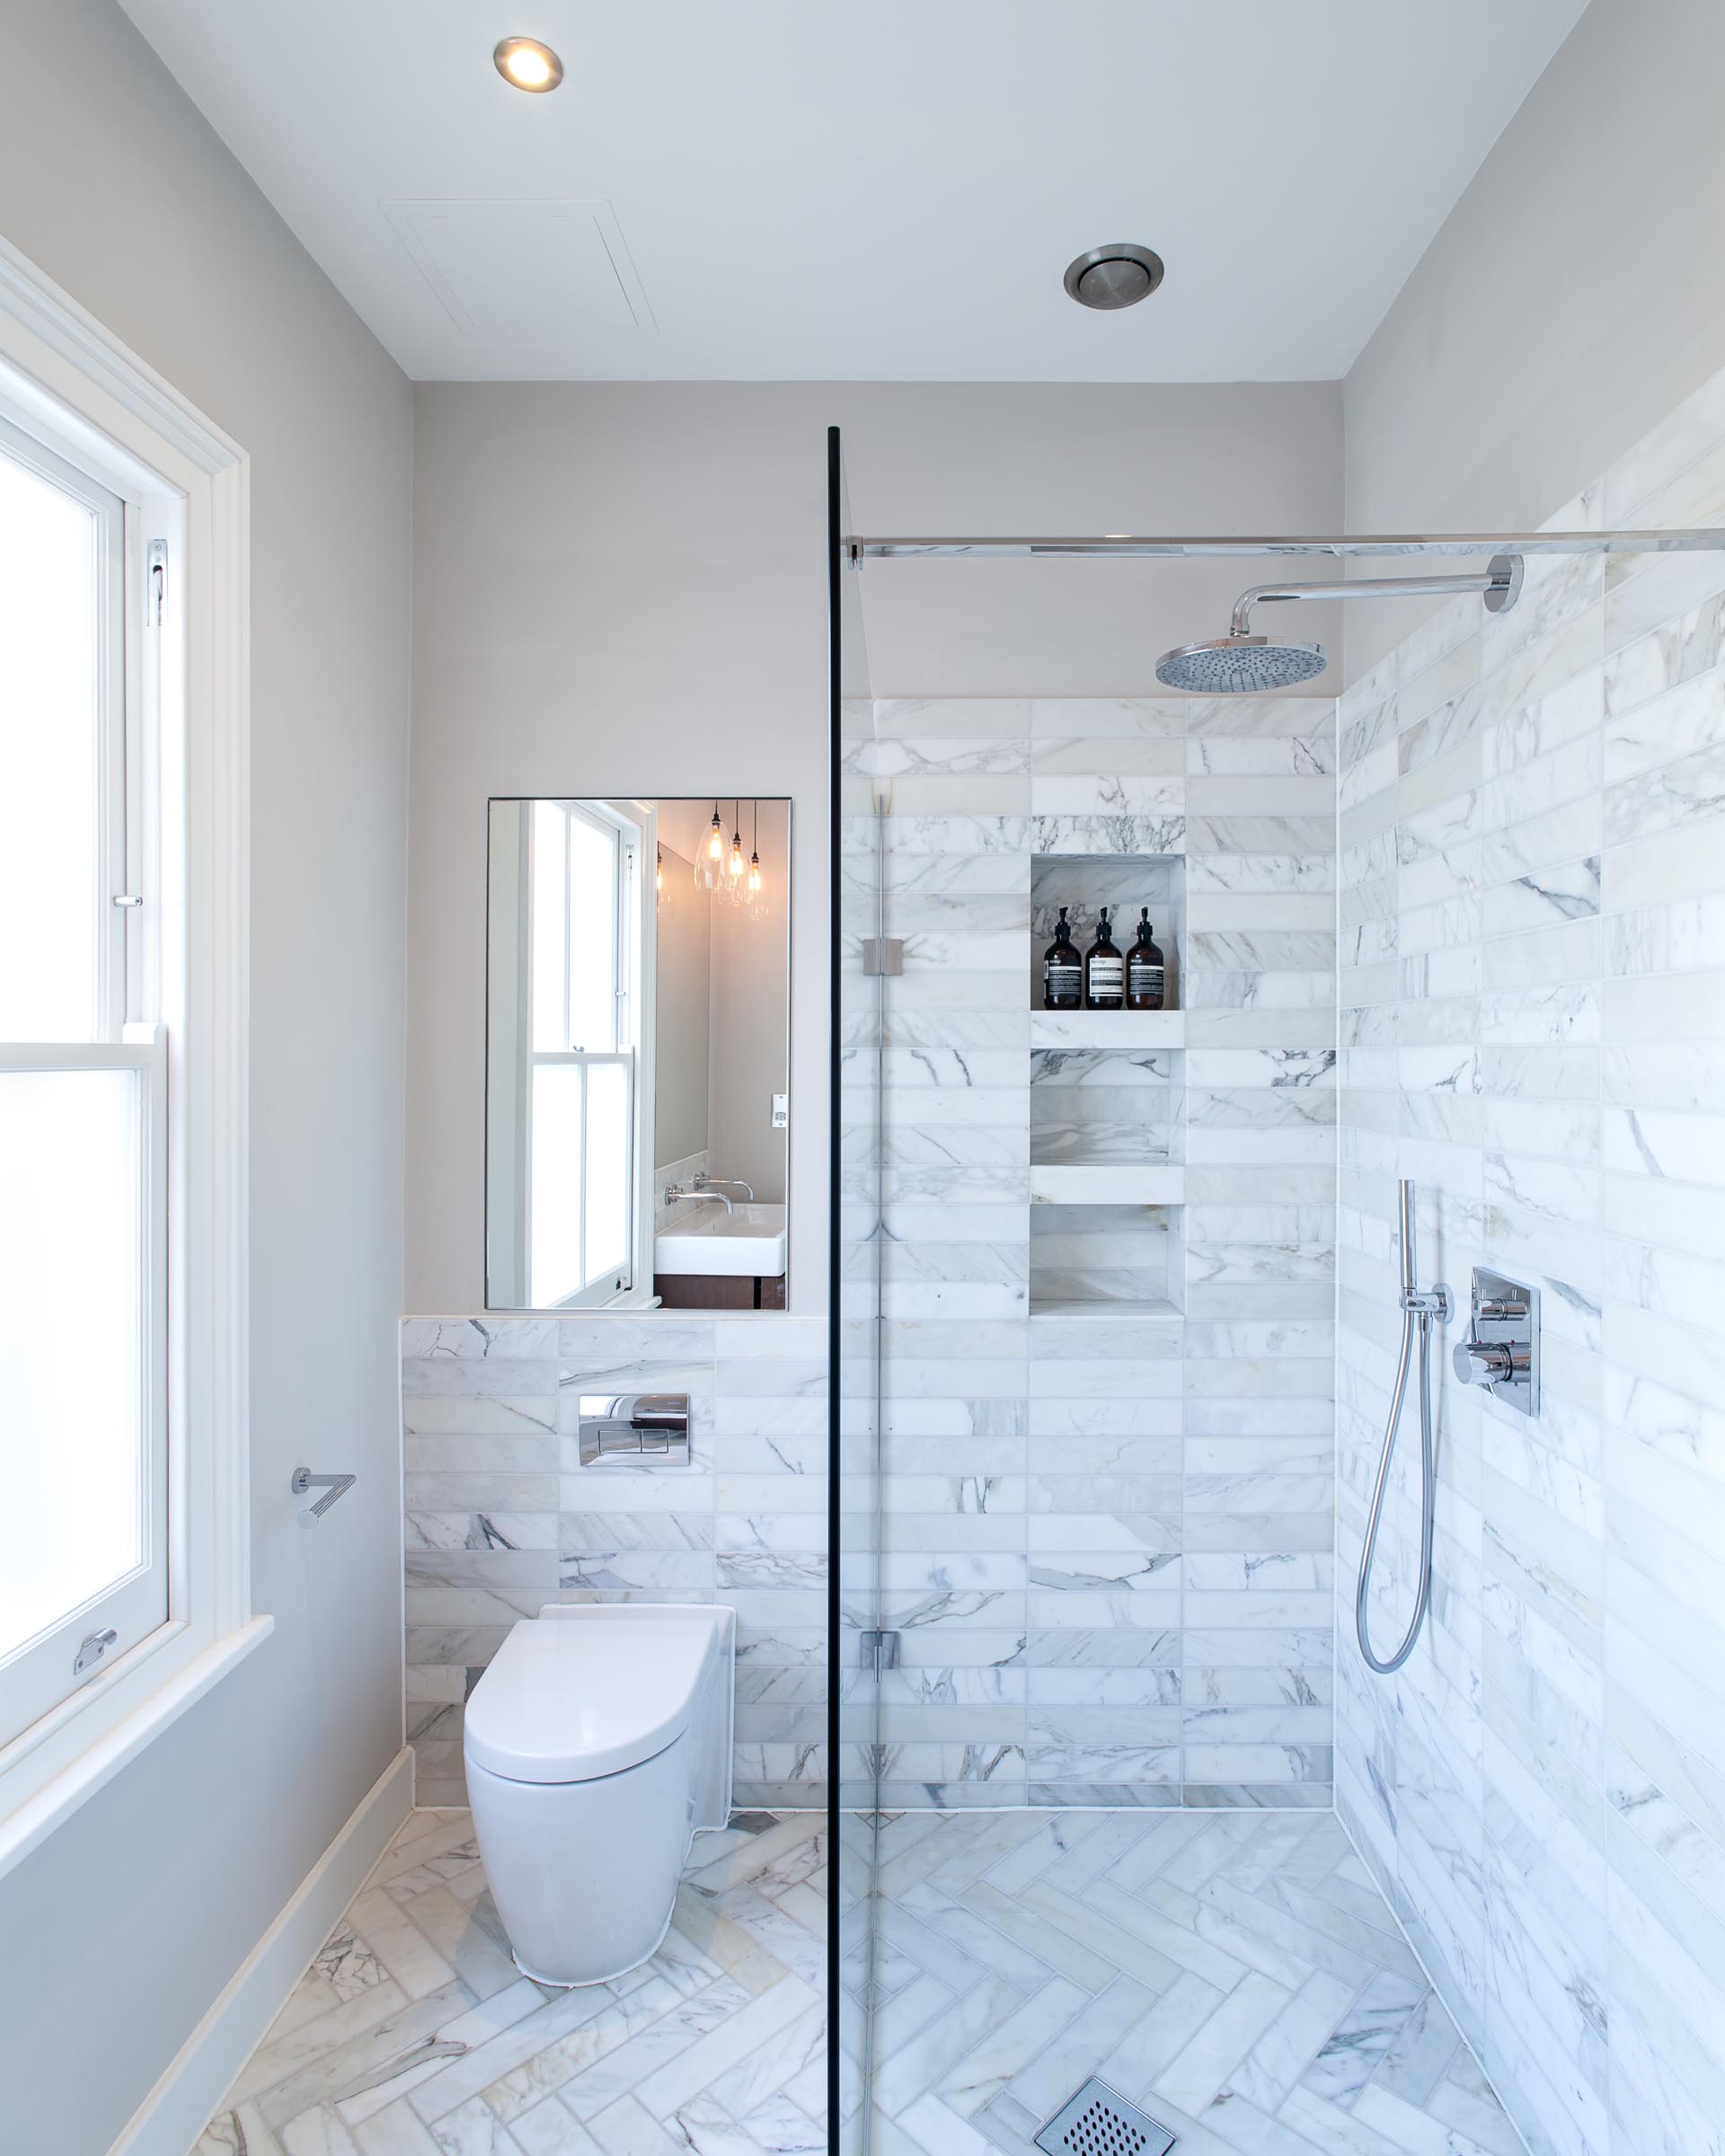 In this contemporary bathroom, gray stone tiles have been used on the floor and walls, while in the shower, there's a trio of built-in shower niches.